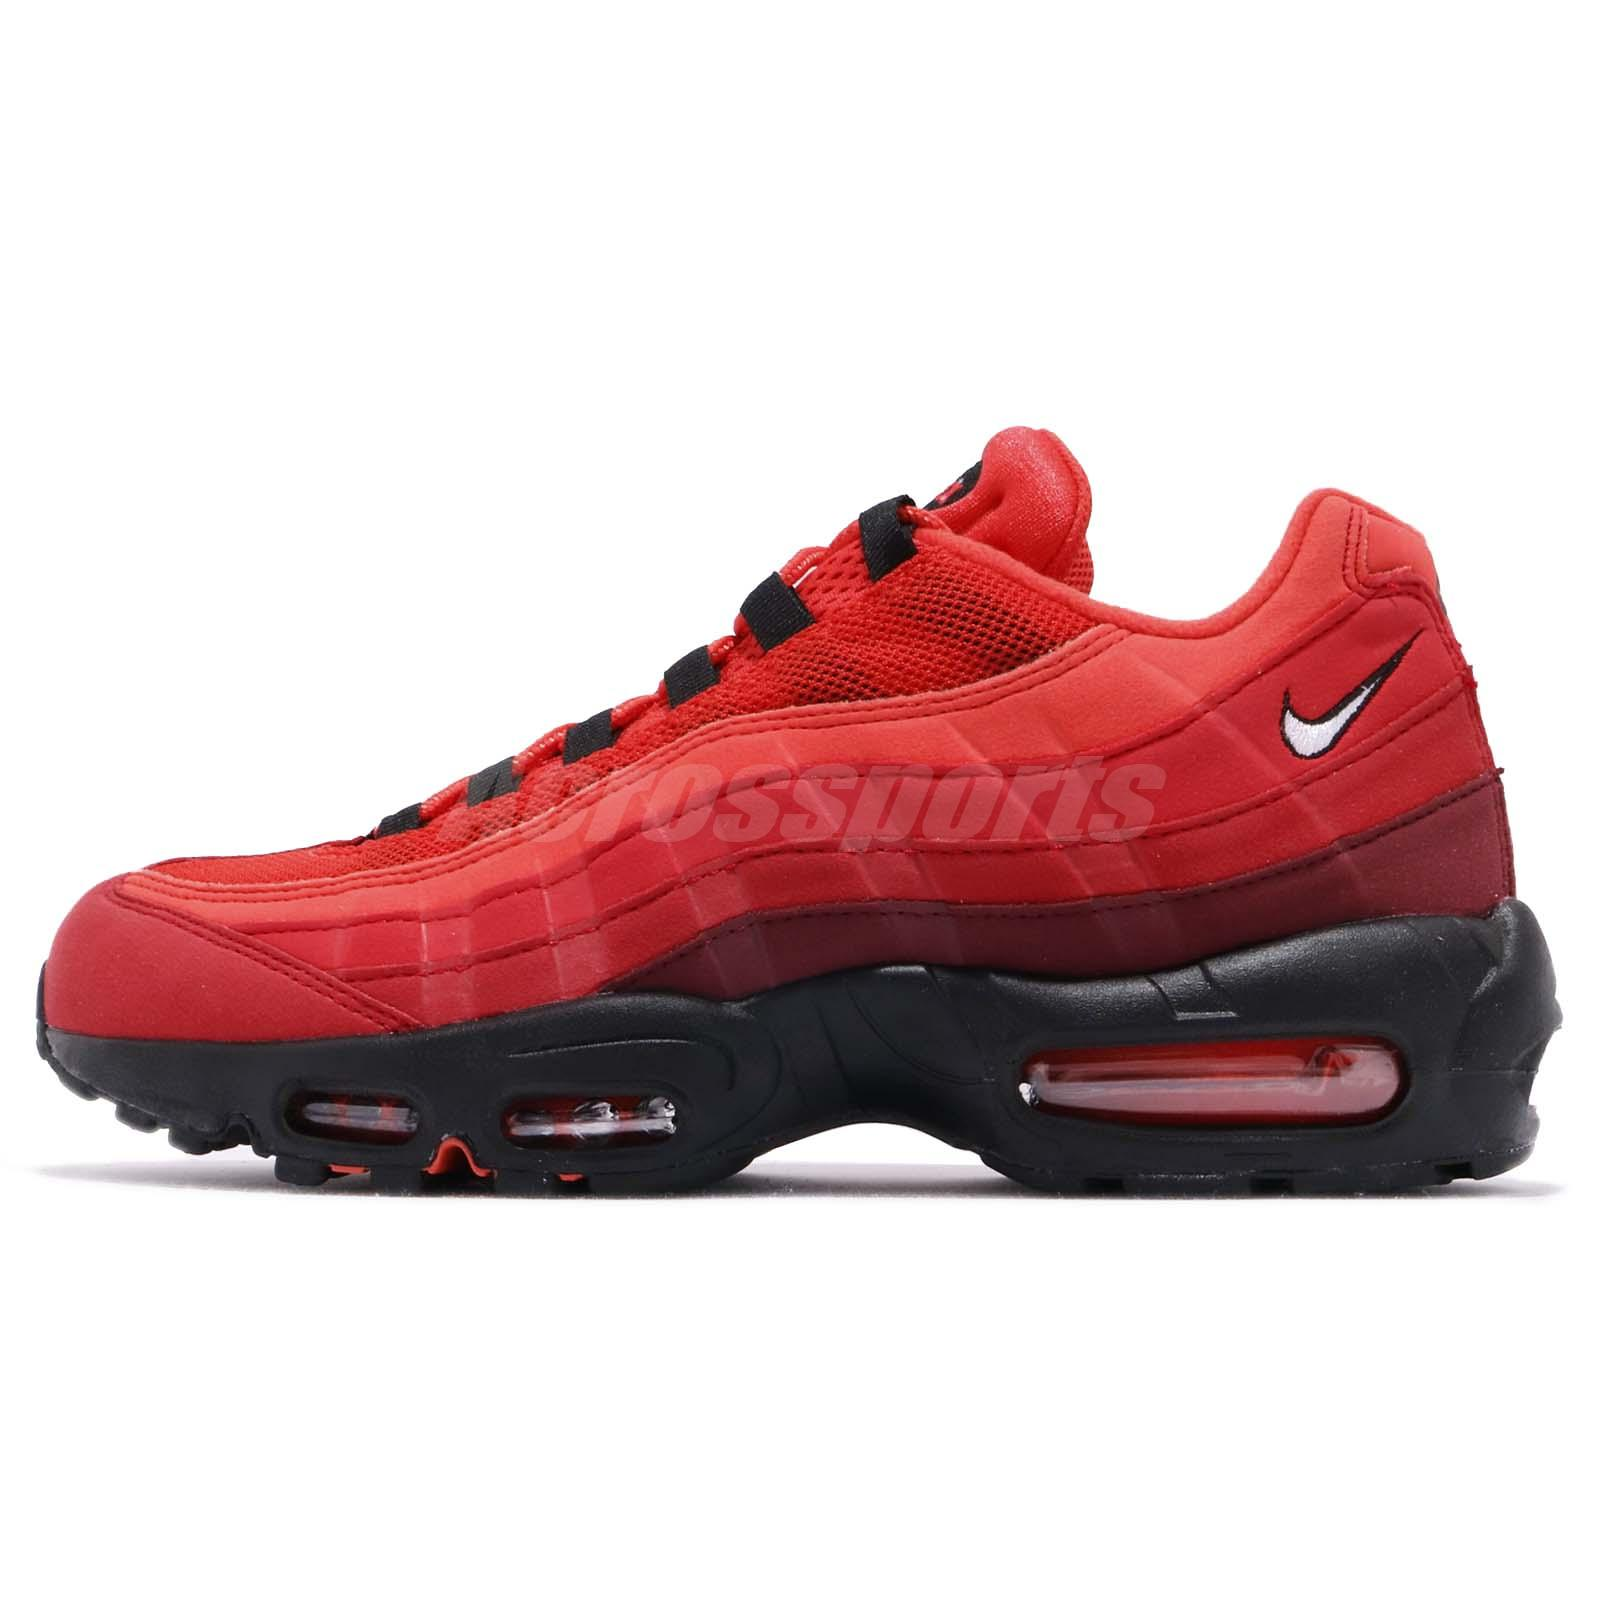 first rate 0b0b6 d0246 Nike Air Max 95 OG Habanero Red Men Running Lifestyle Shoes Sneakers AT2865- 600